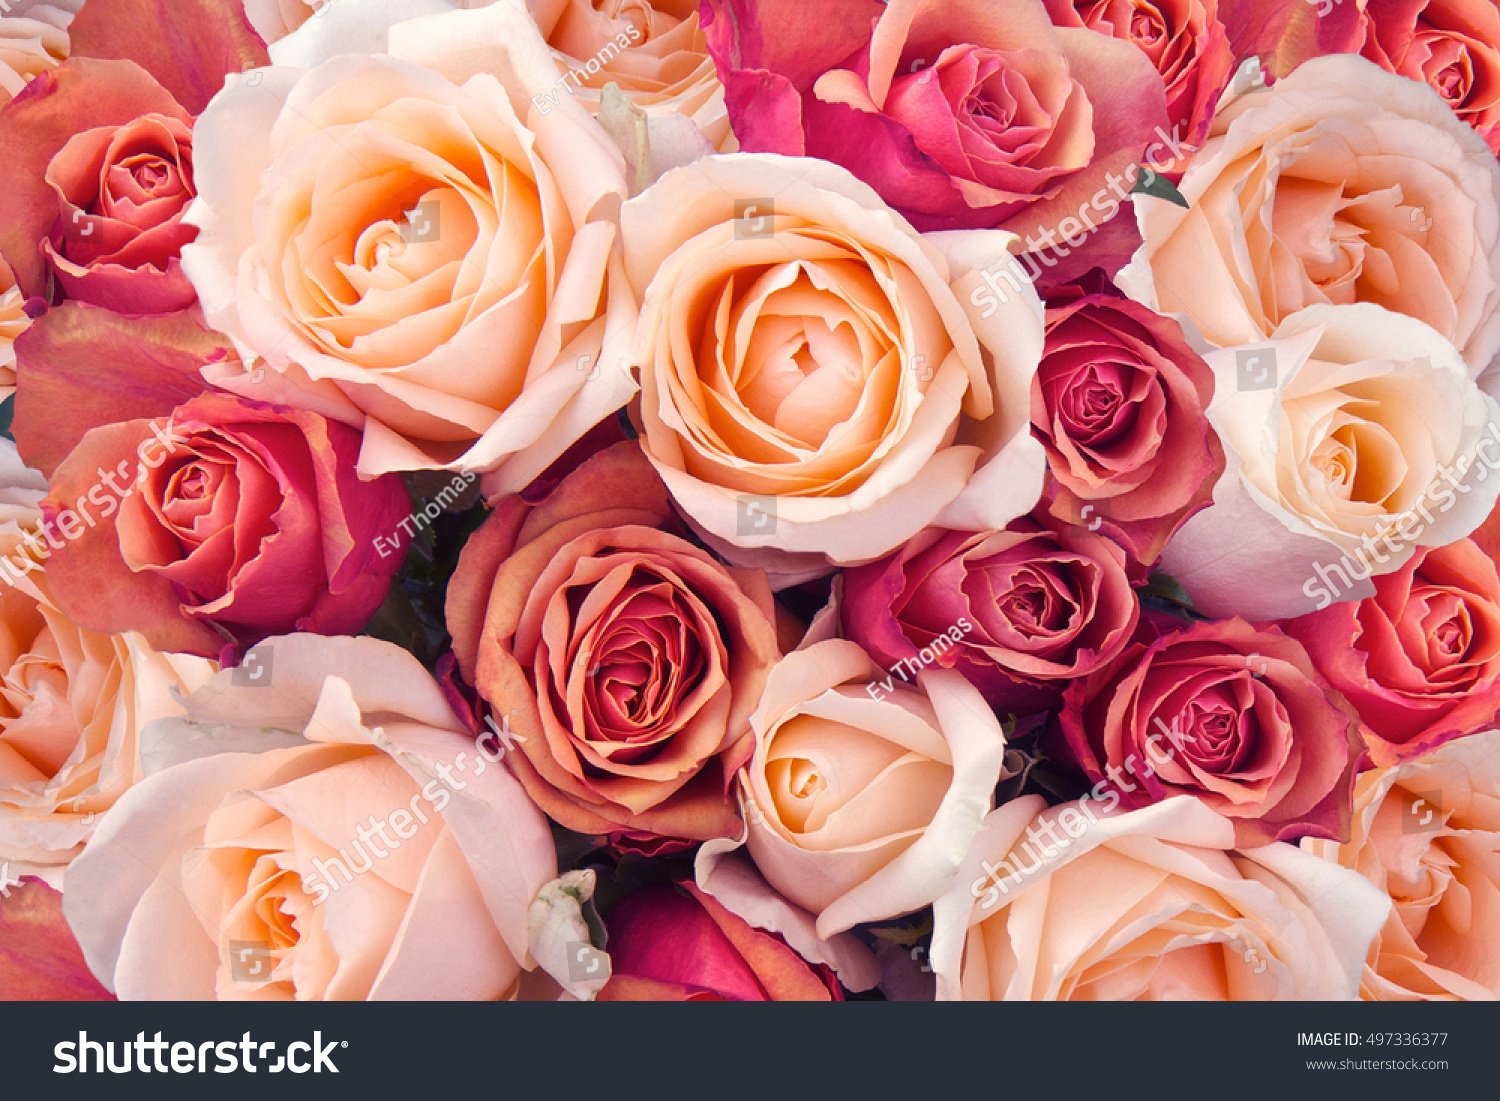 Background pink orange peach roses stock photo royalty free background of pink orange and peach roses mightylinksfo